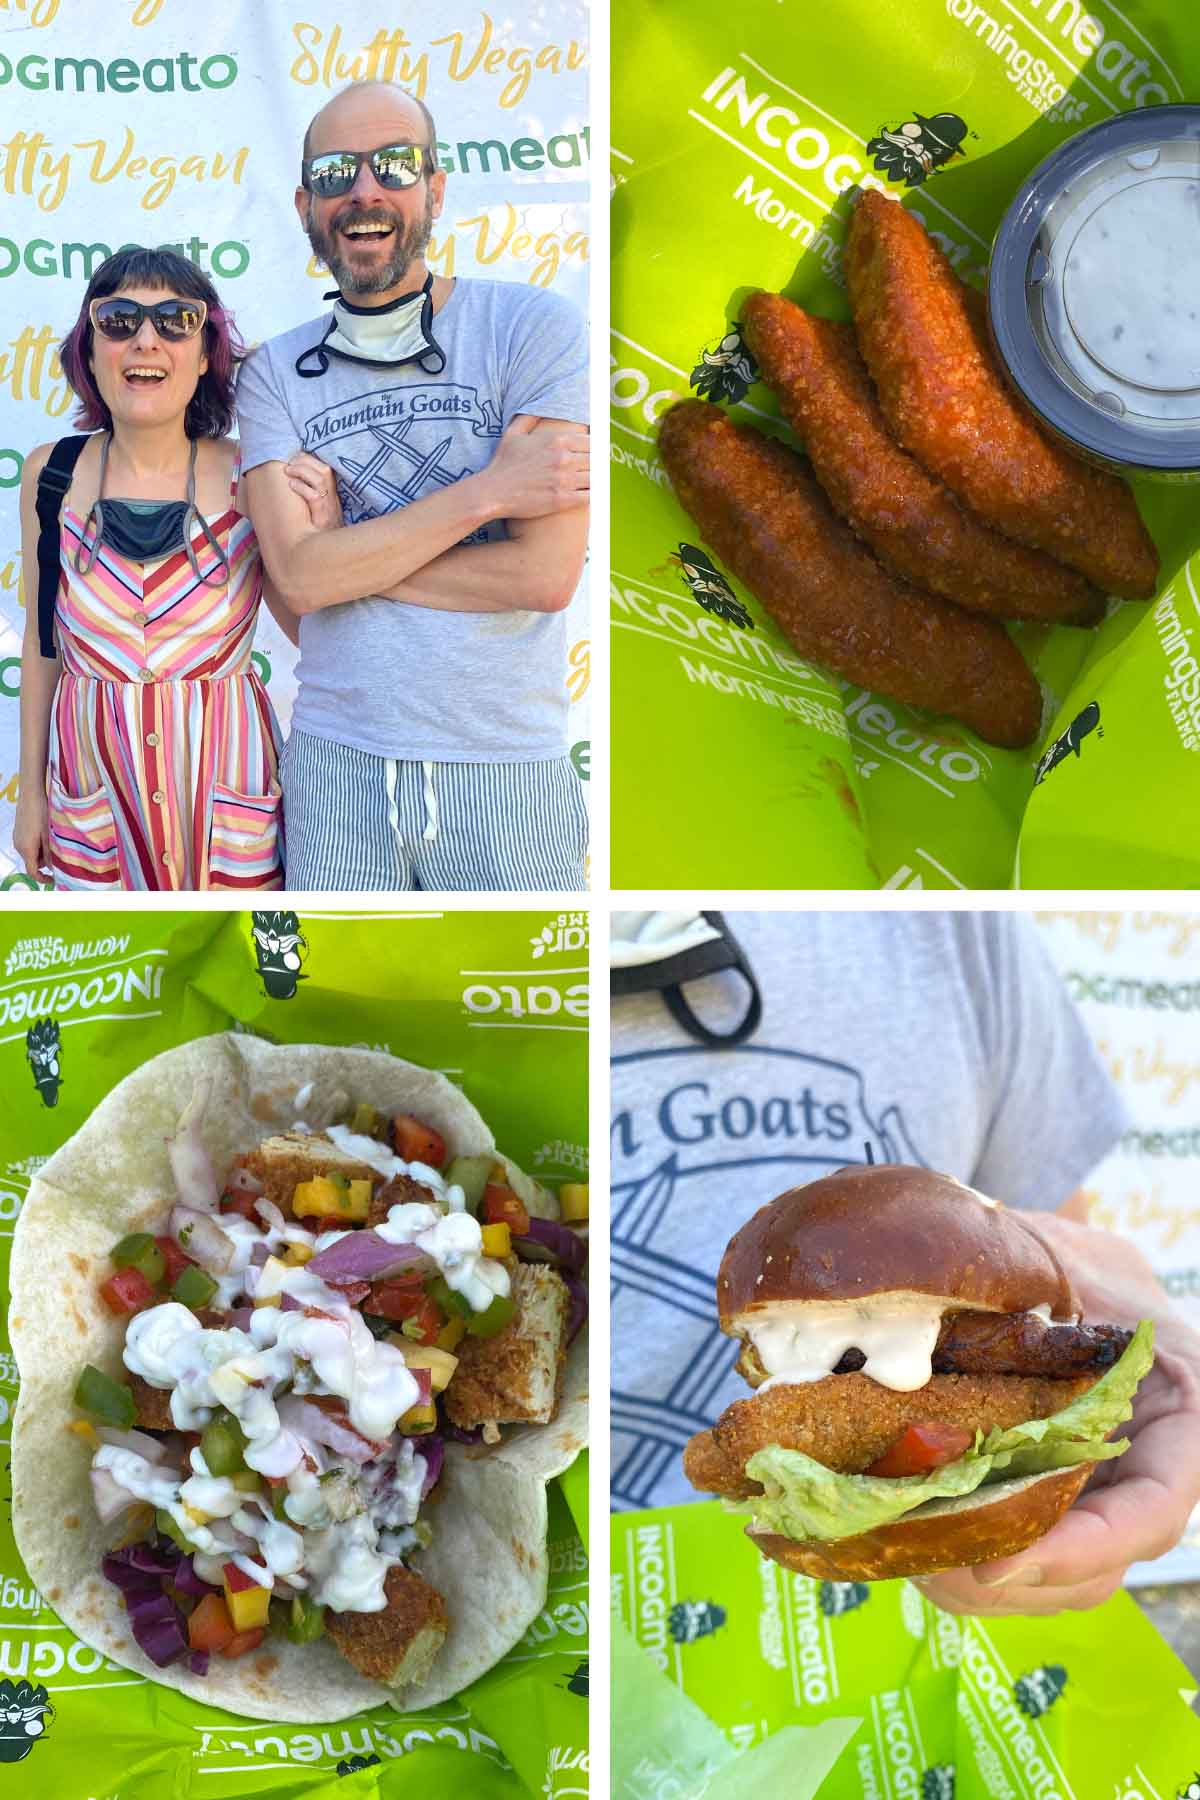 image collage of Dave and Becky at the Incogmeato event, vegan buffalo wings, a vegan chicken taco, and a vegan chicken sandwich with creamy sauce